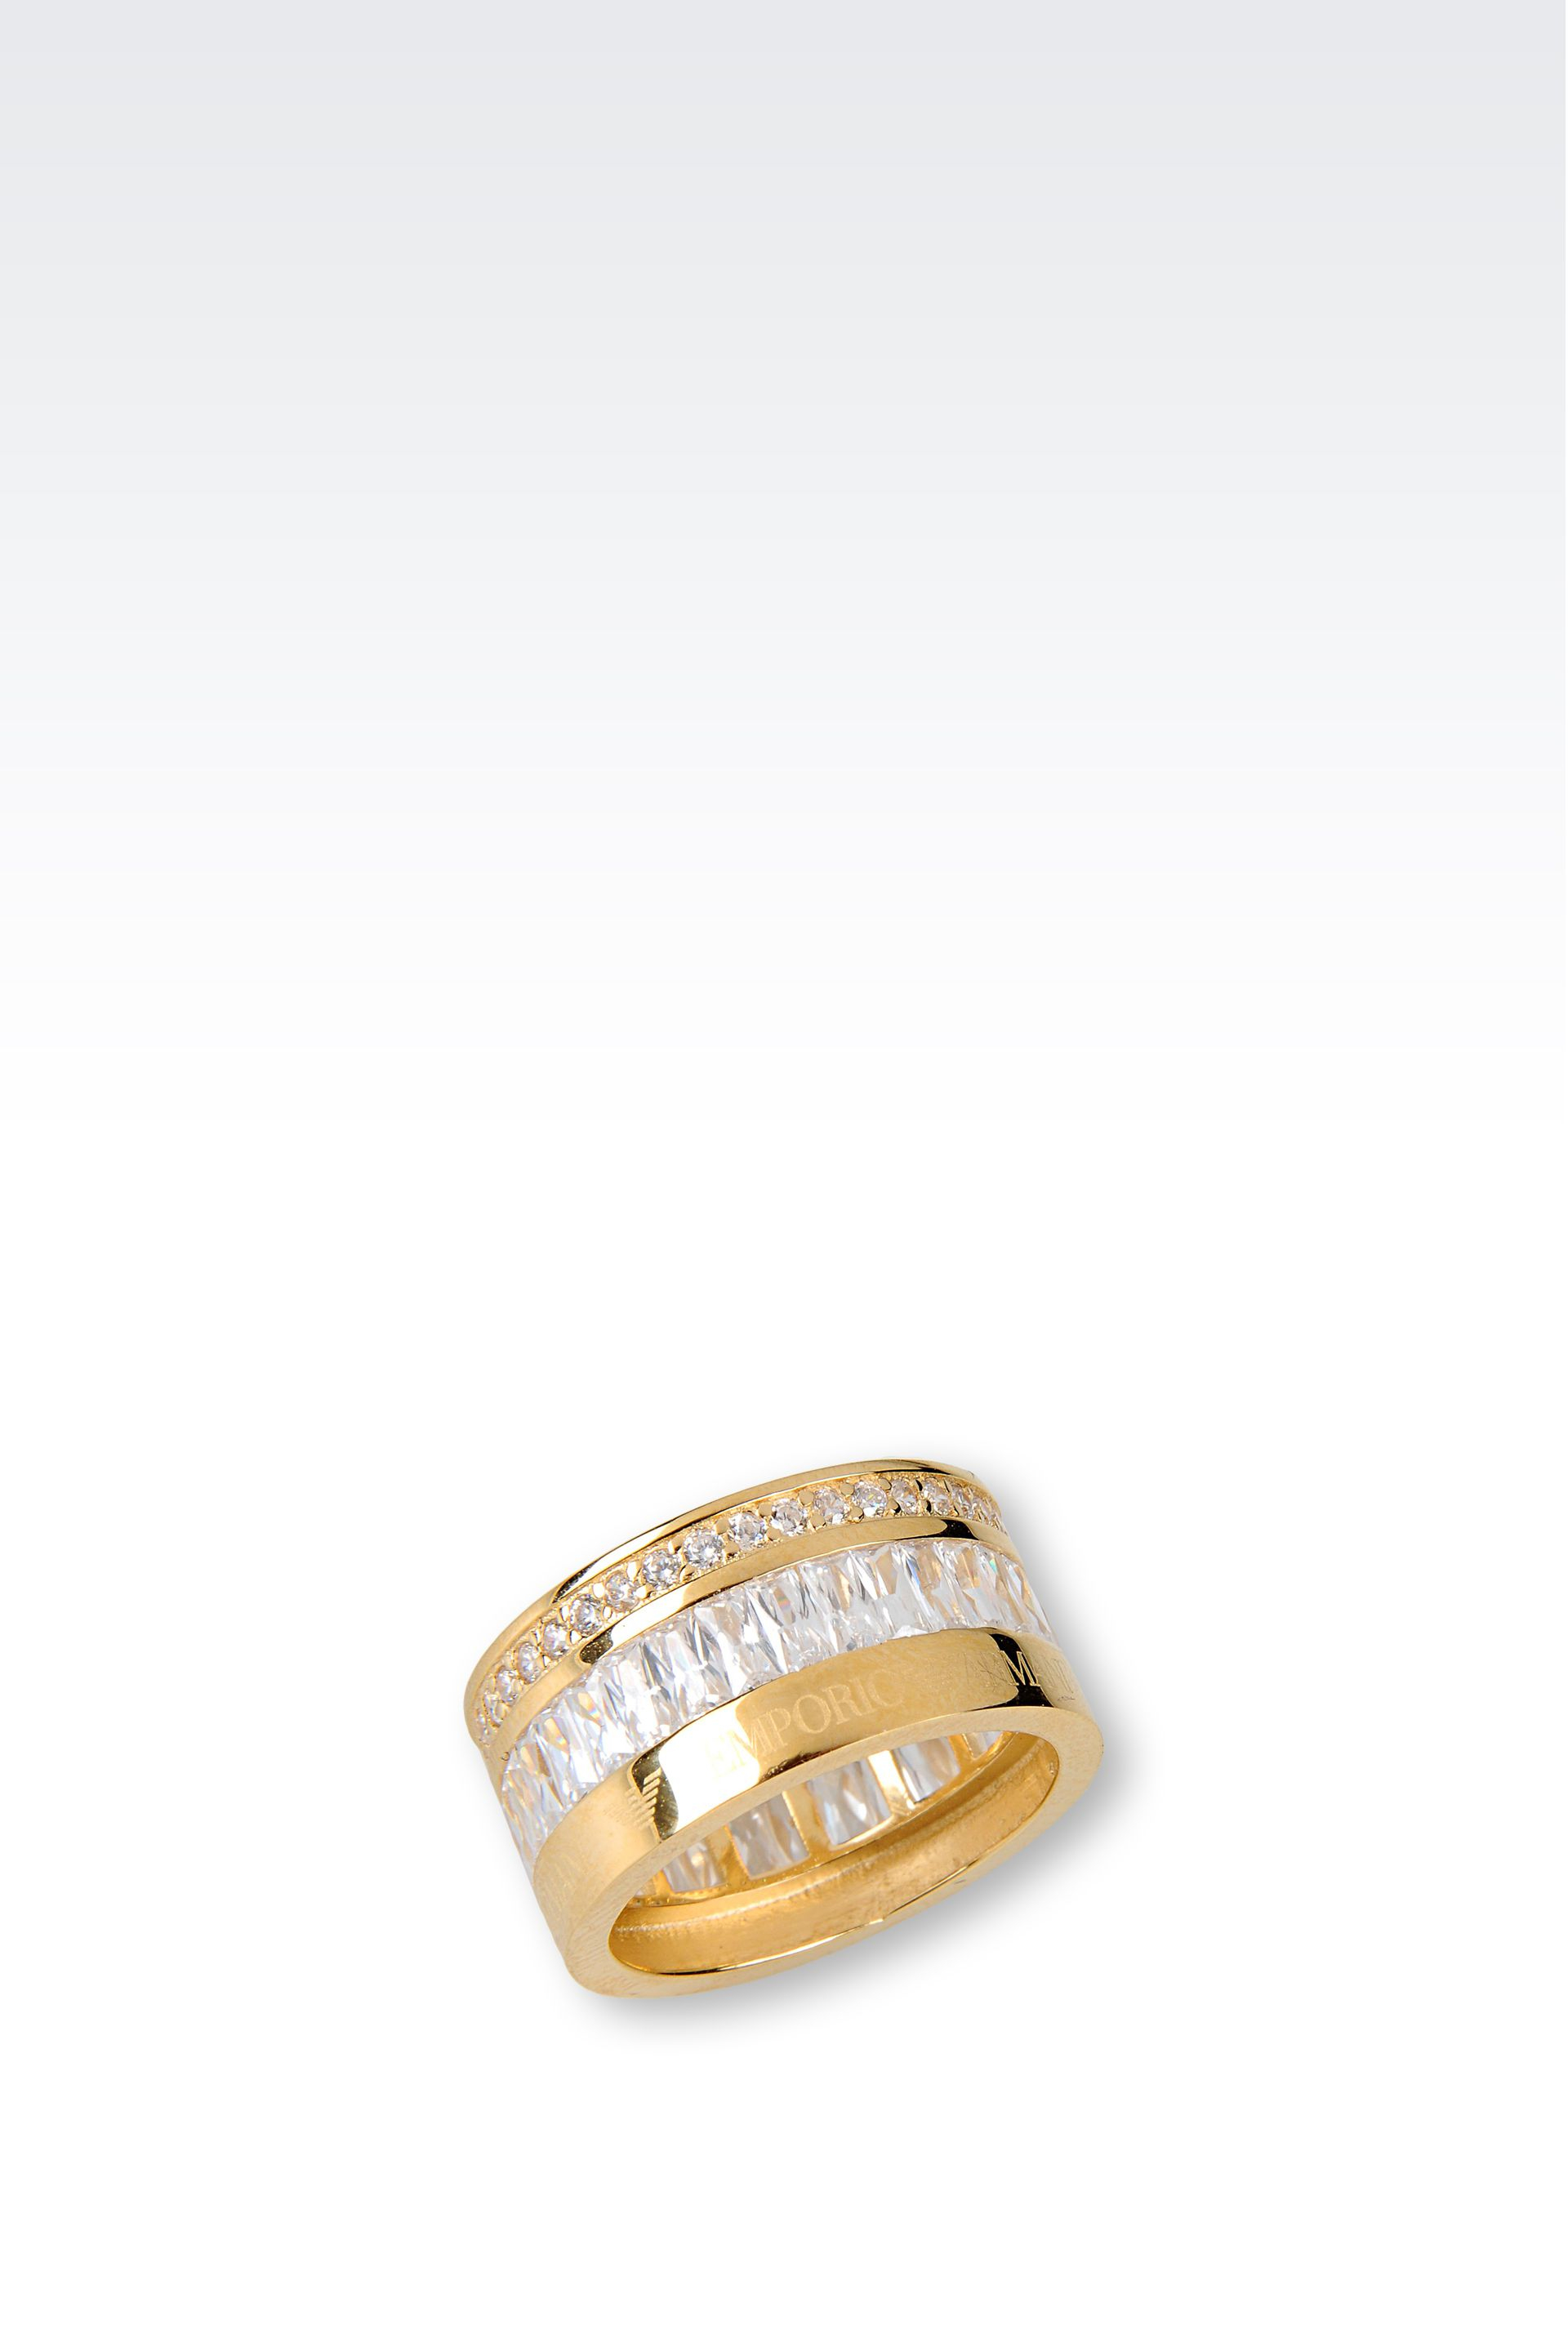 emporio armani ring in gold plated silver and cz stones in